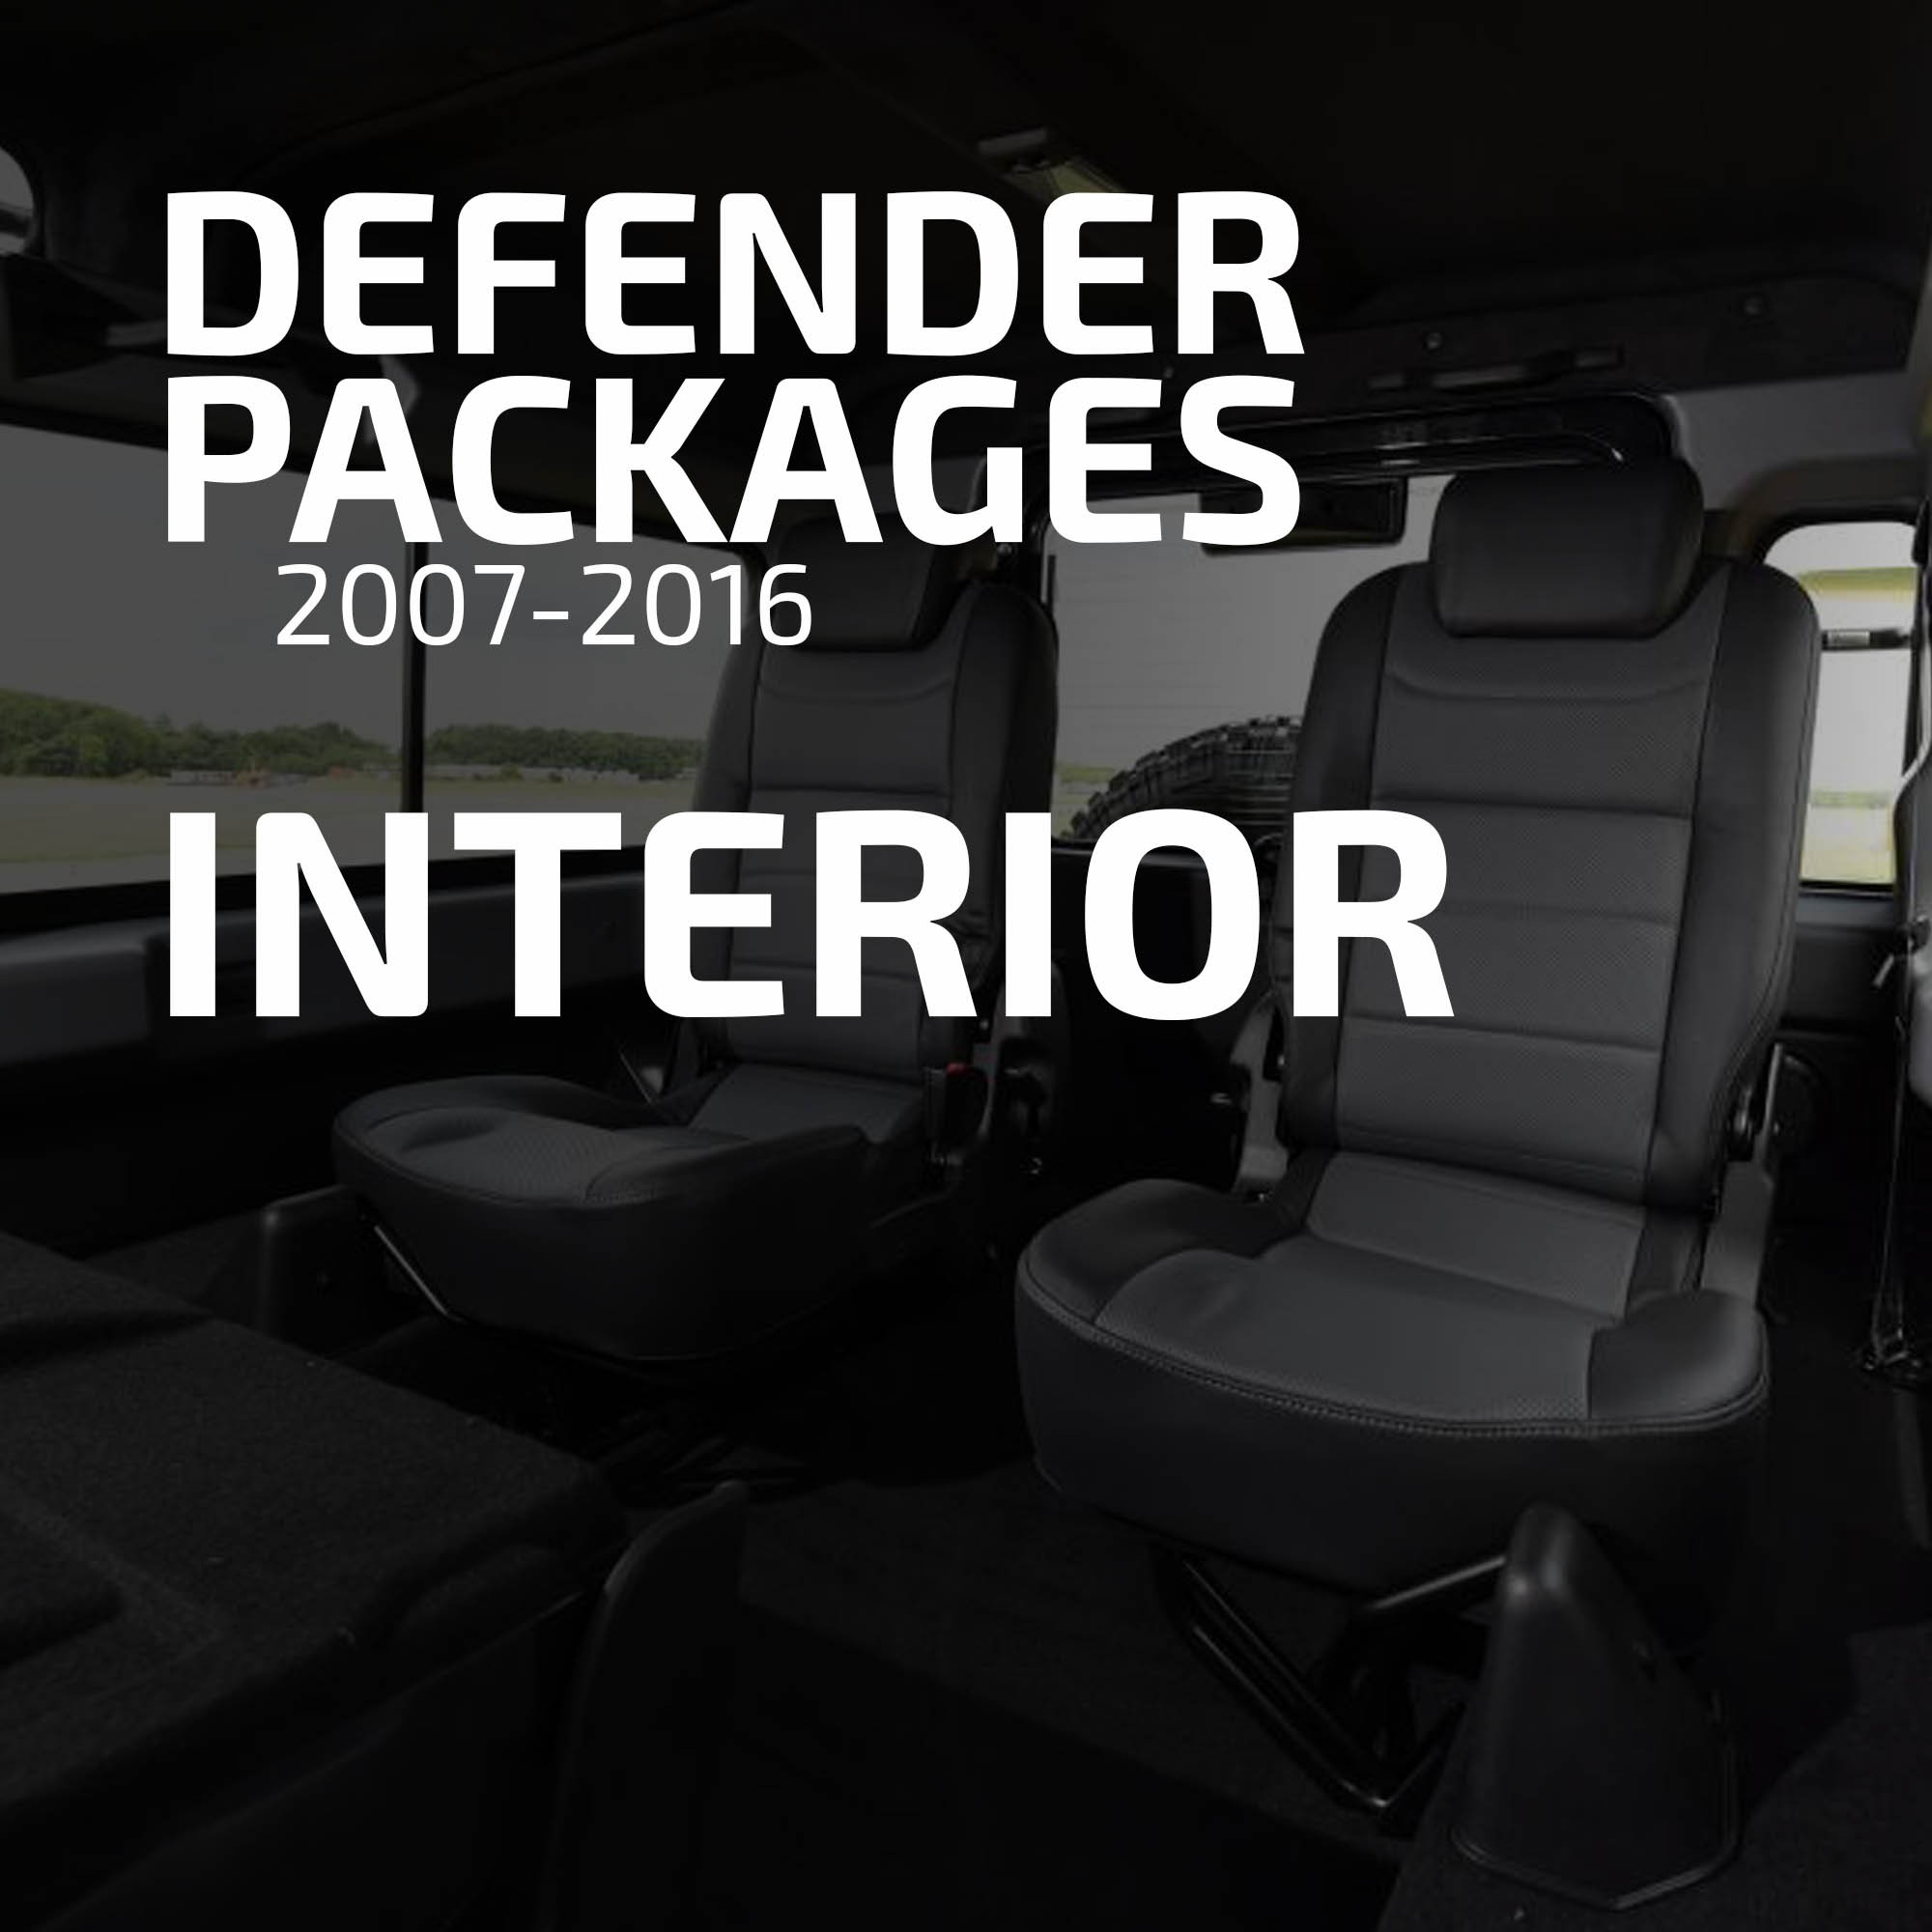 Interior Packages